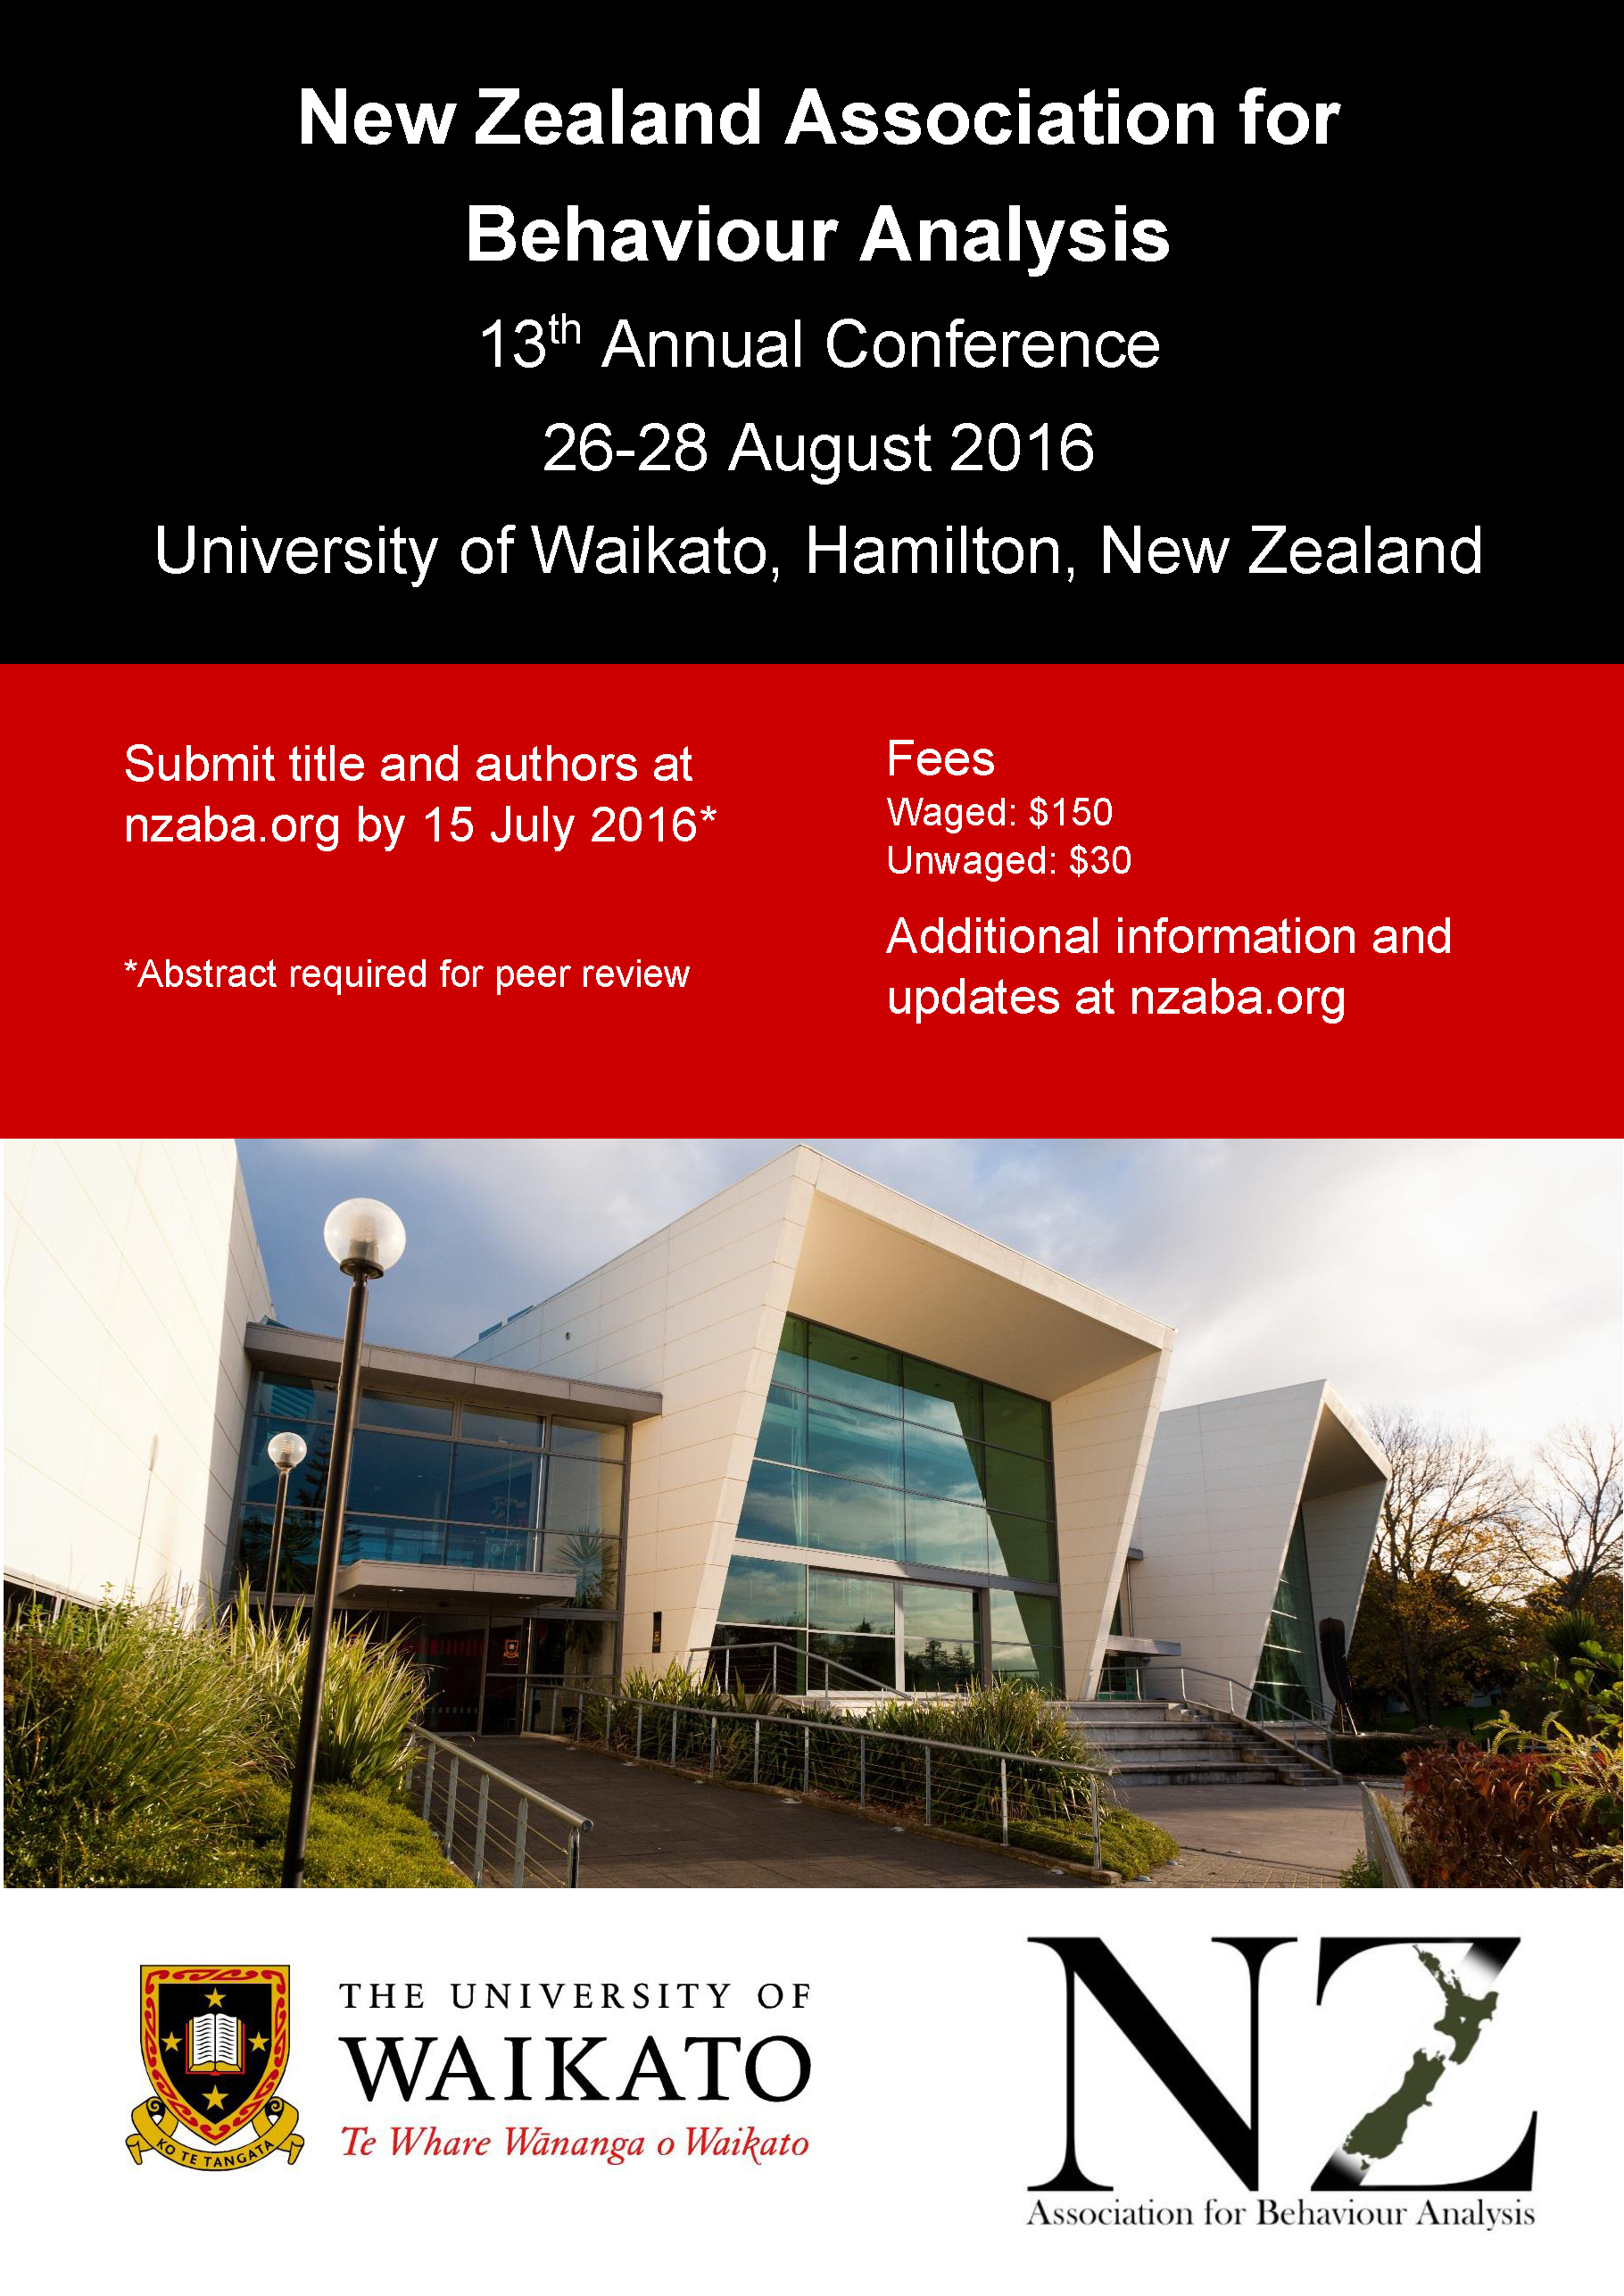 NZABA 2016 Announcement.png